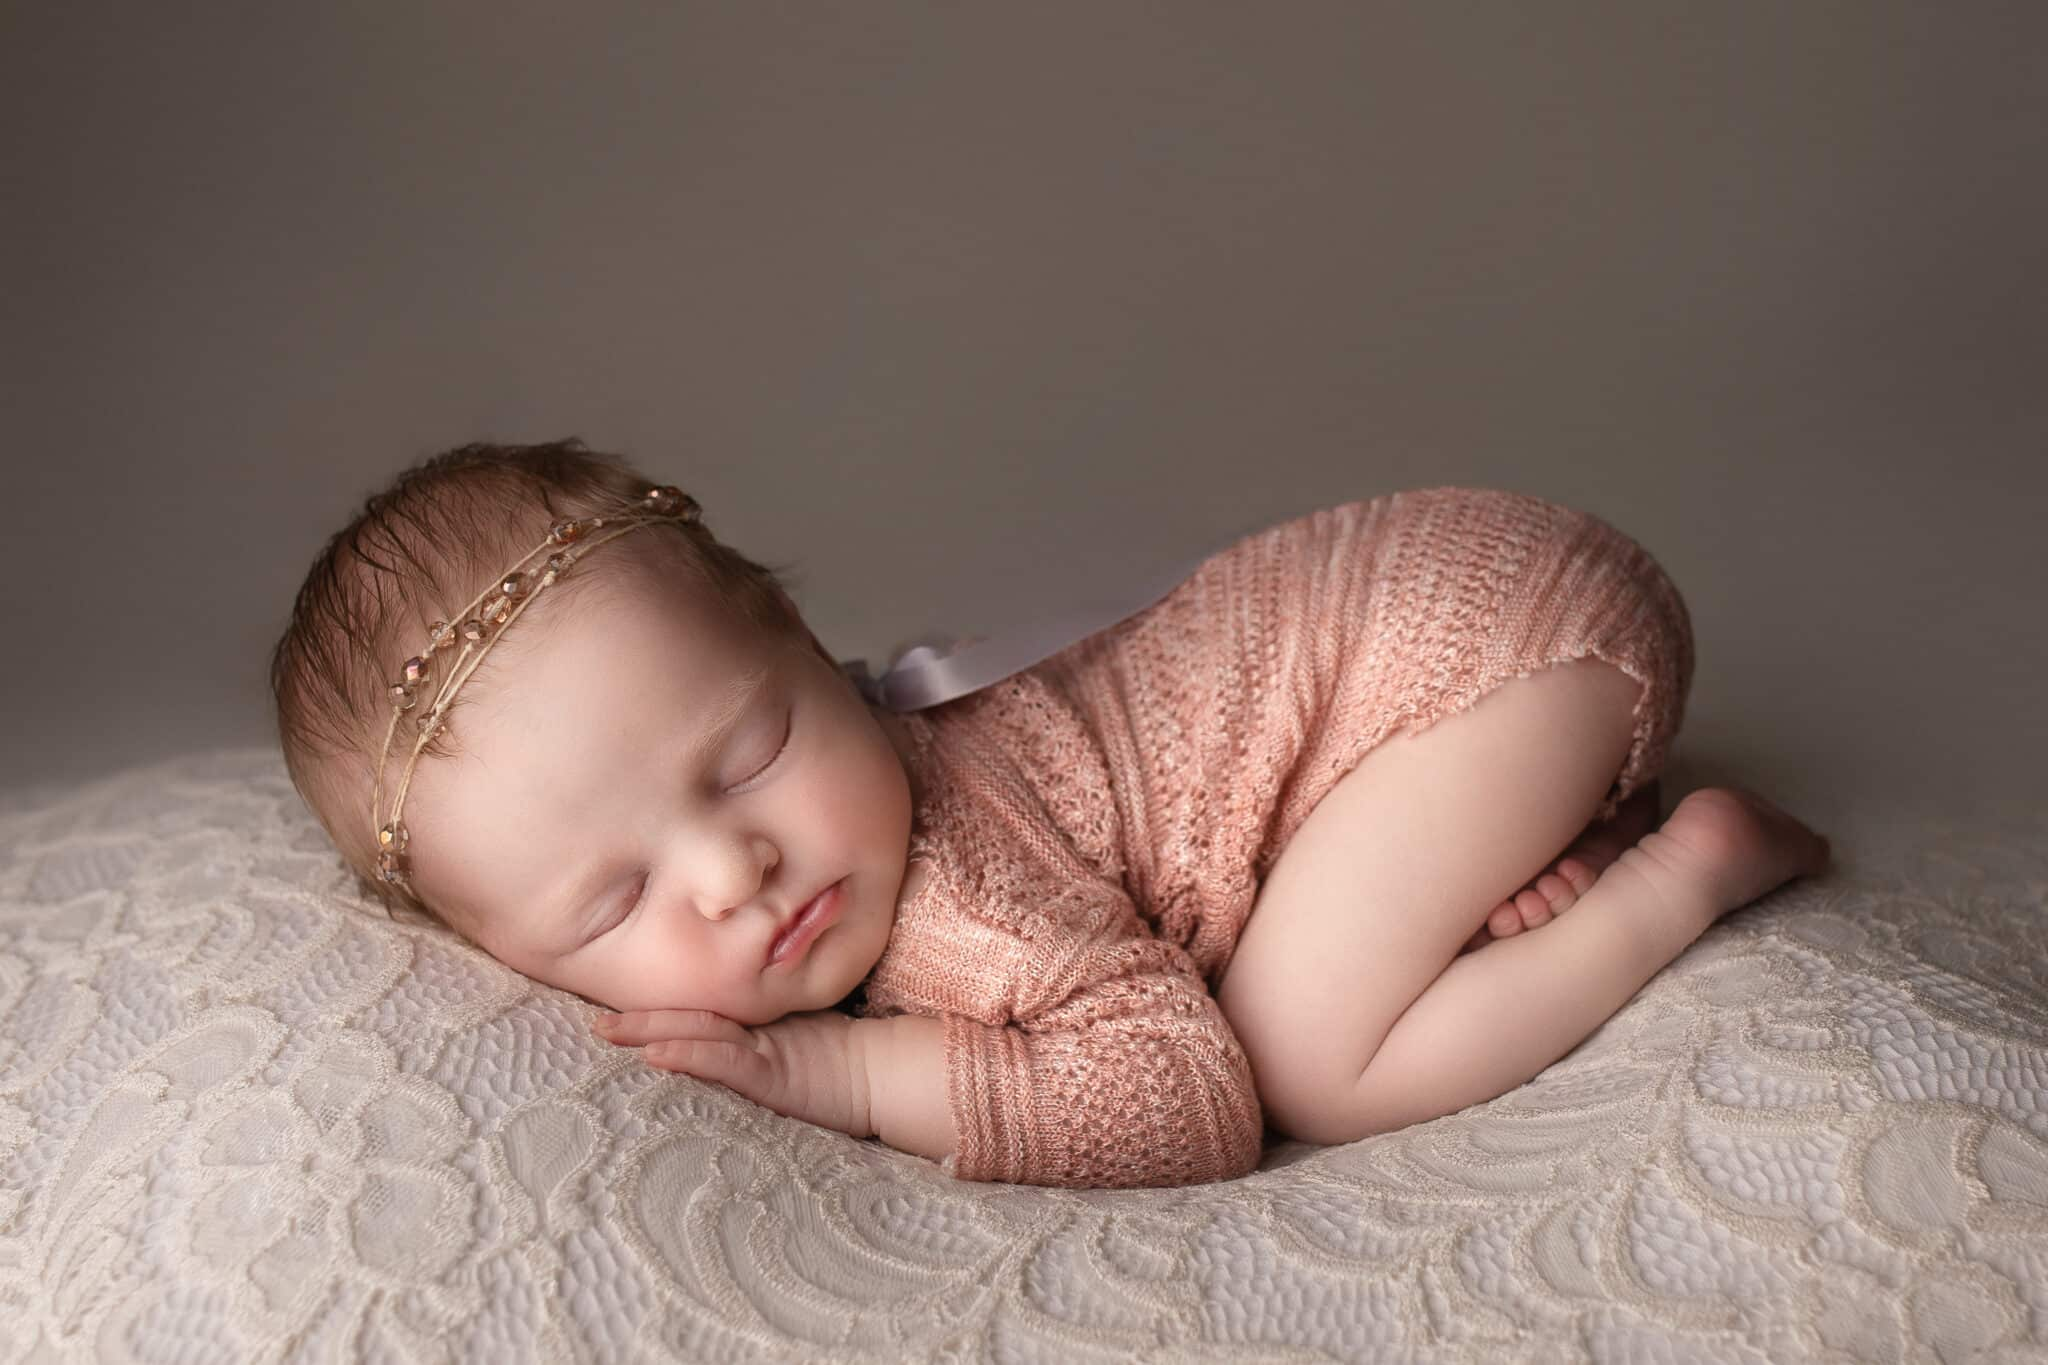 Newborn baby girl wearing a coral pink romper sleeping on a cream lace fabric.